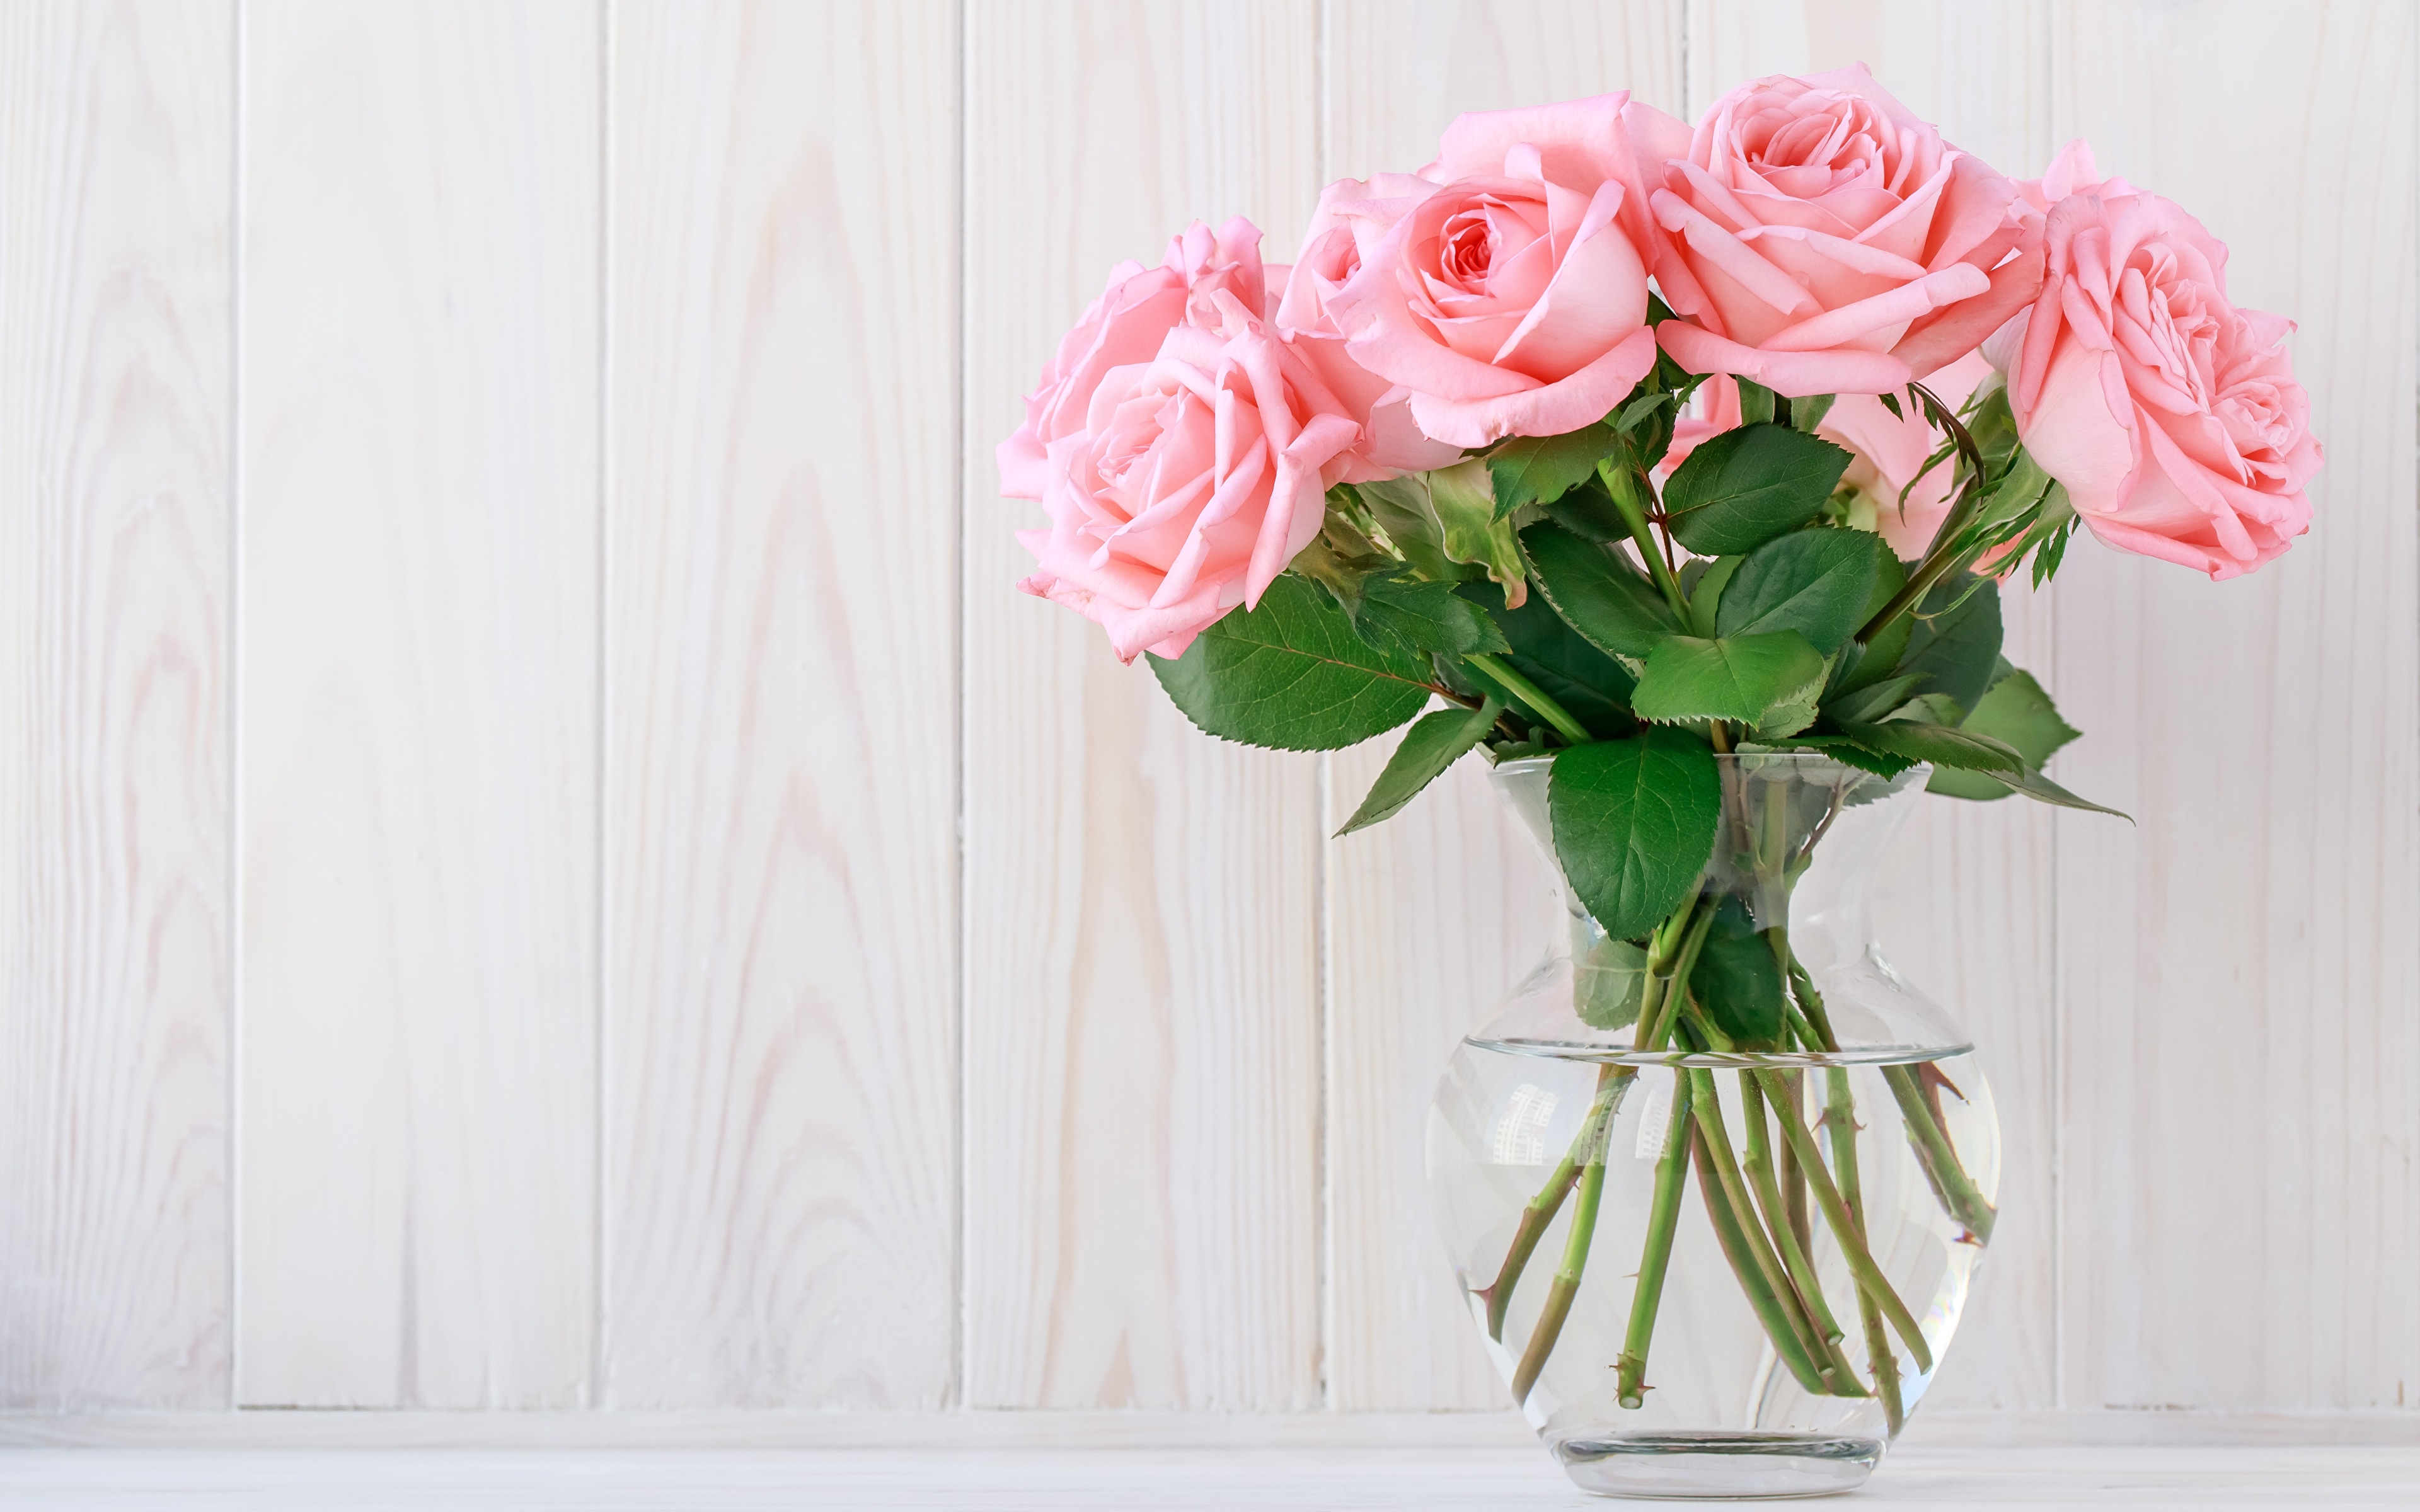 https://s1.1zoom.me/b5050/706/Roses_Bouquets_Pink_color_Vase_Template_greeting_588392_3840x2400.jpg